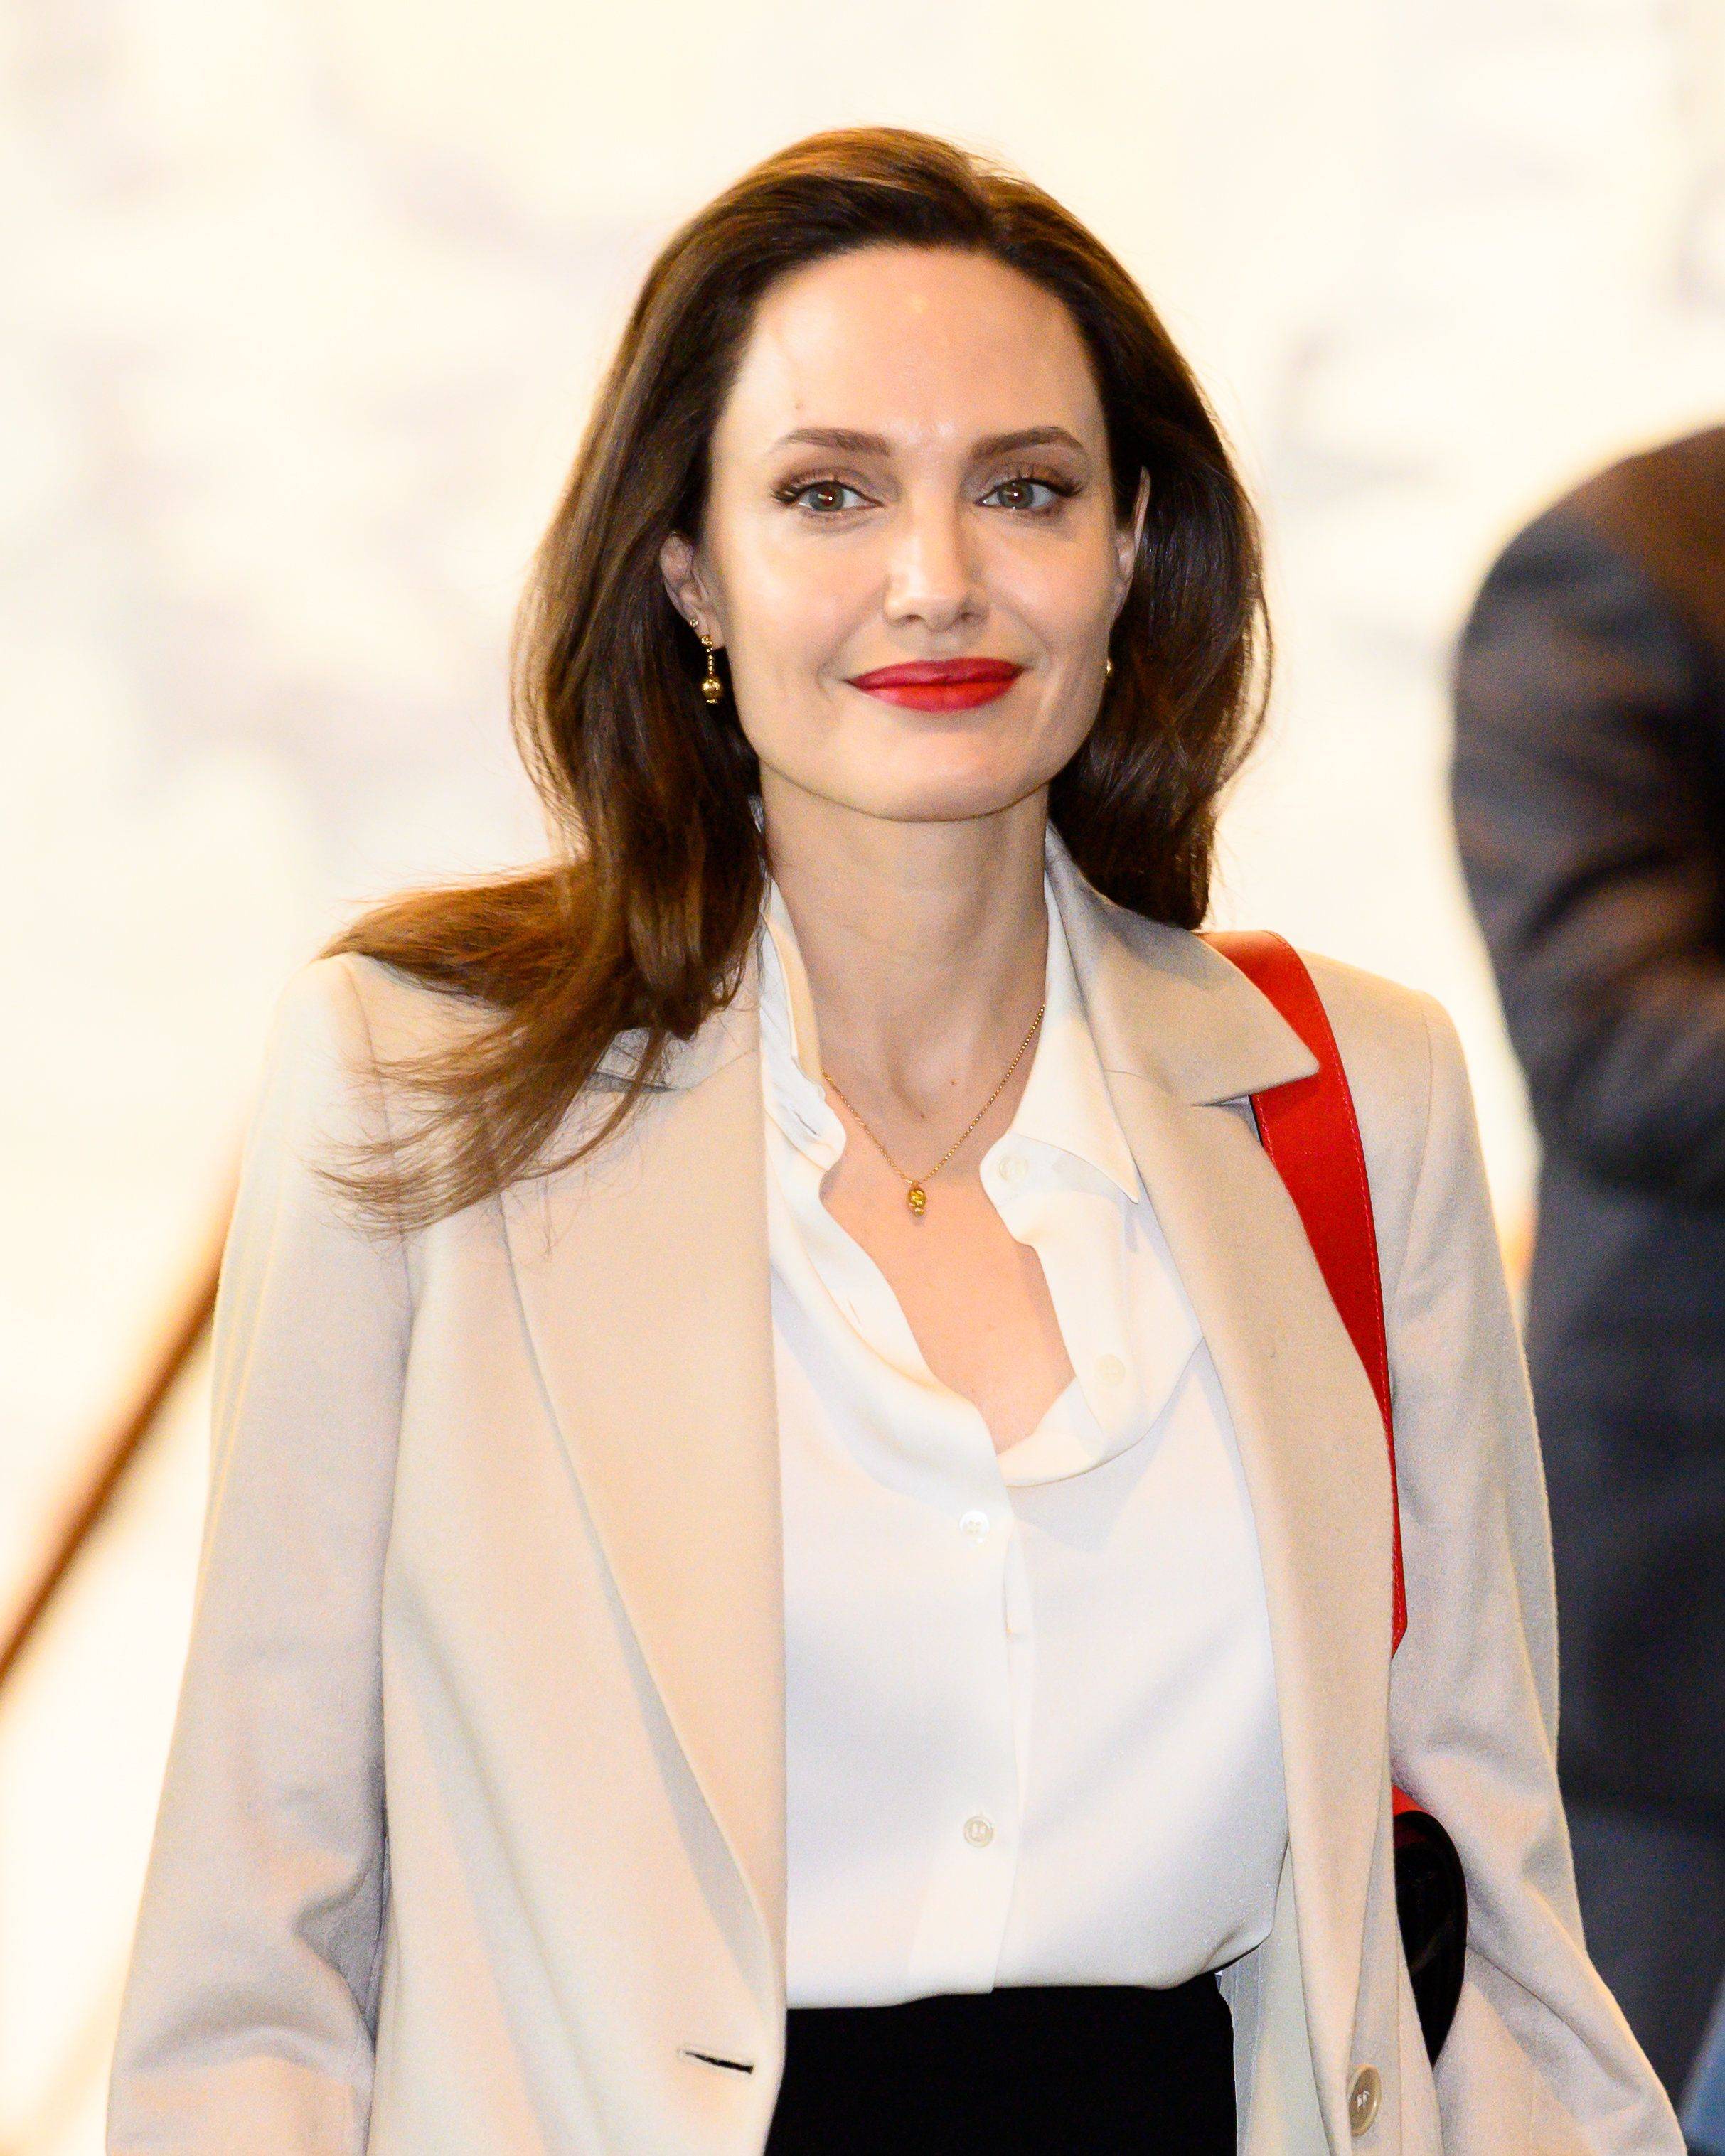 Angelina Jolie at the United Nations General Assembly in New York City in March. In an interview with People published April